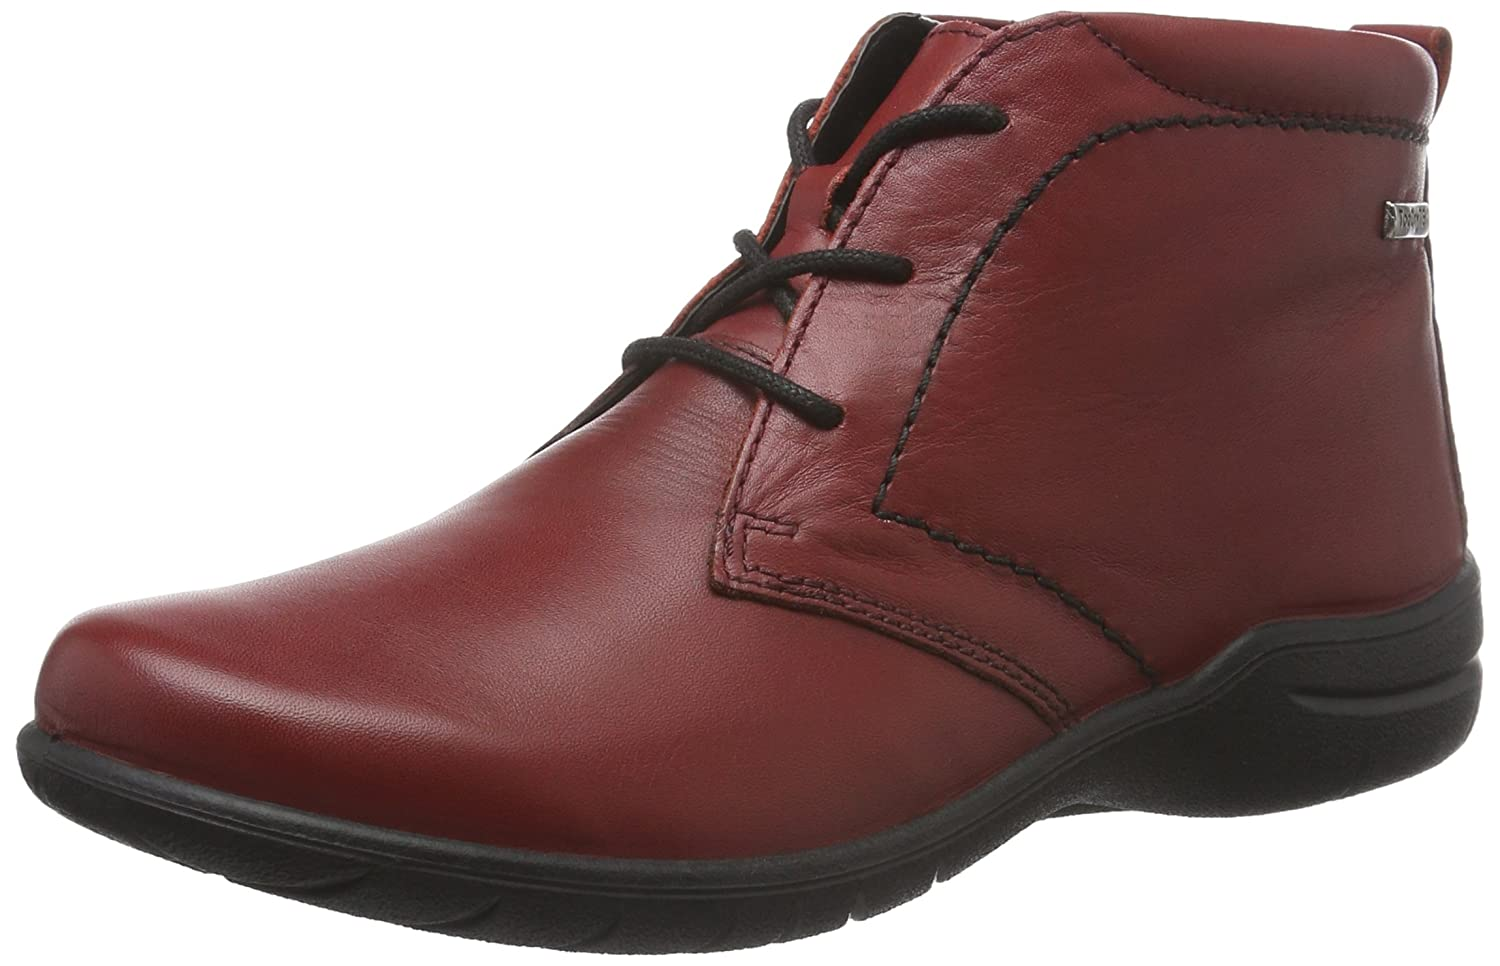 Josef Seibel 04, Fabienne 04, Bottes Classiques Seibel Femme Rouge Bottes (Hibiscus 380) 7c1fabe - therethere.space